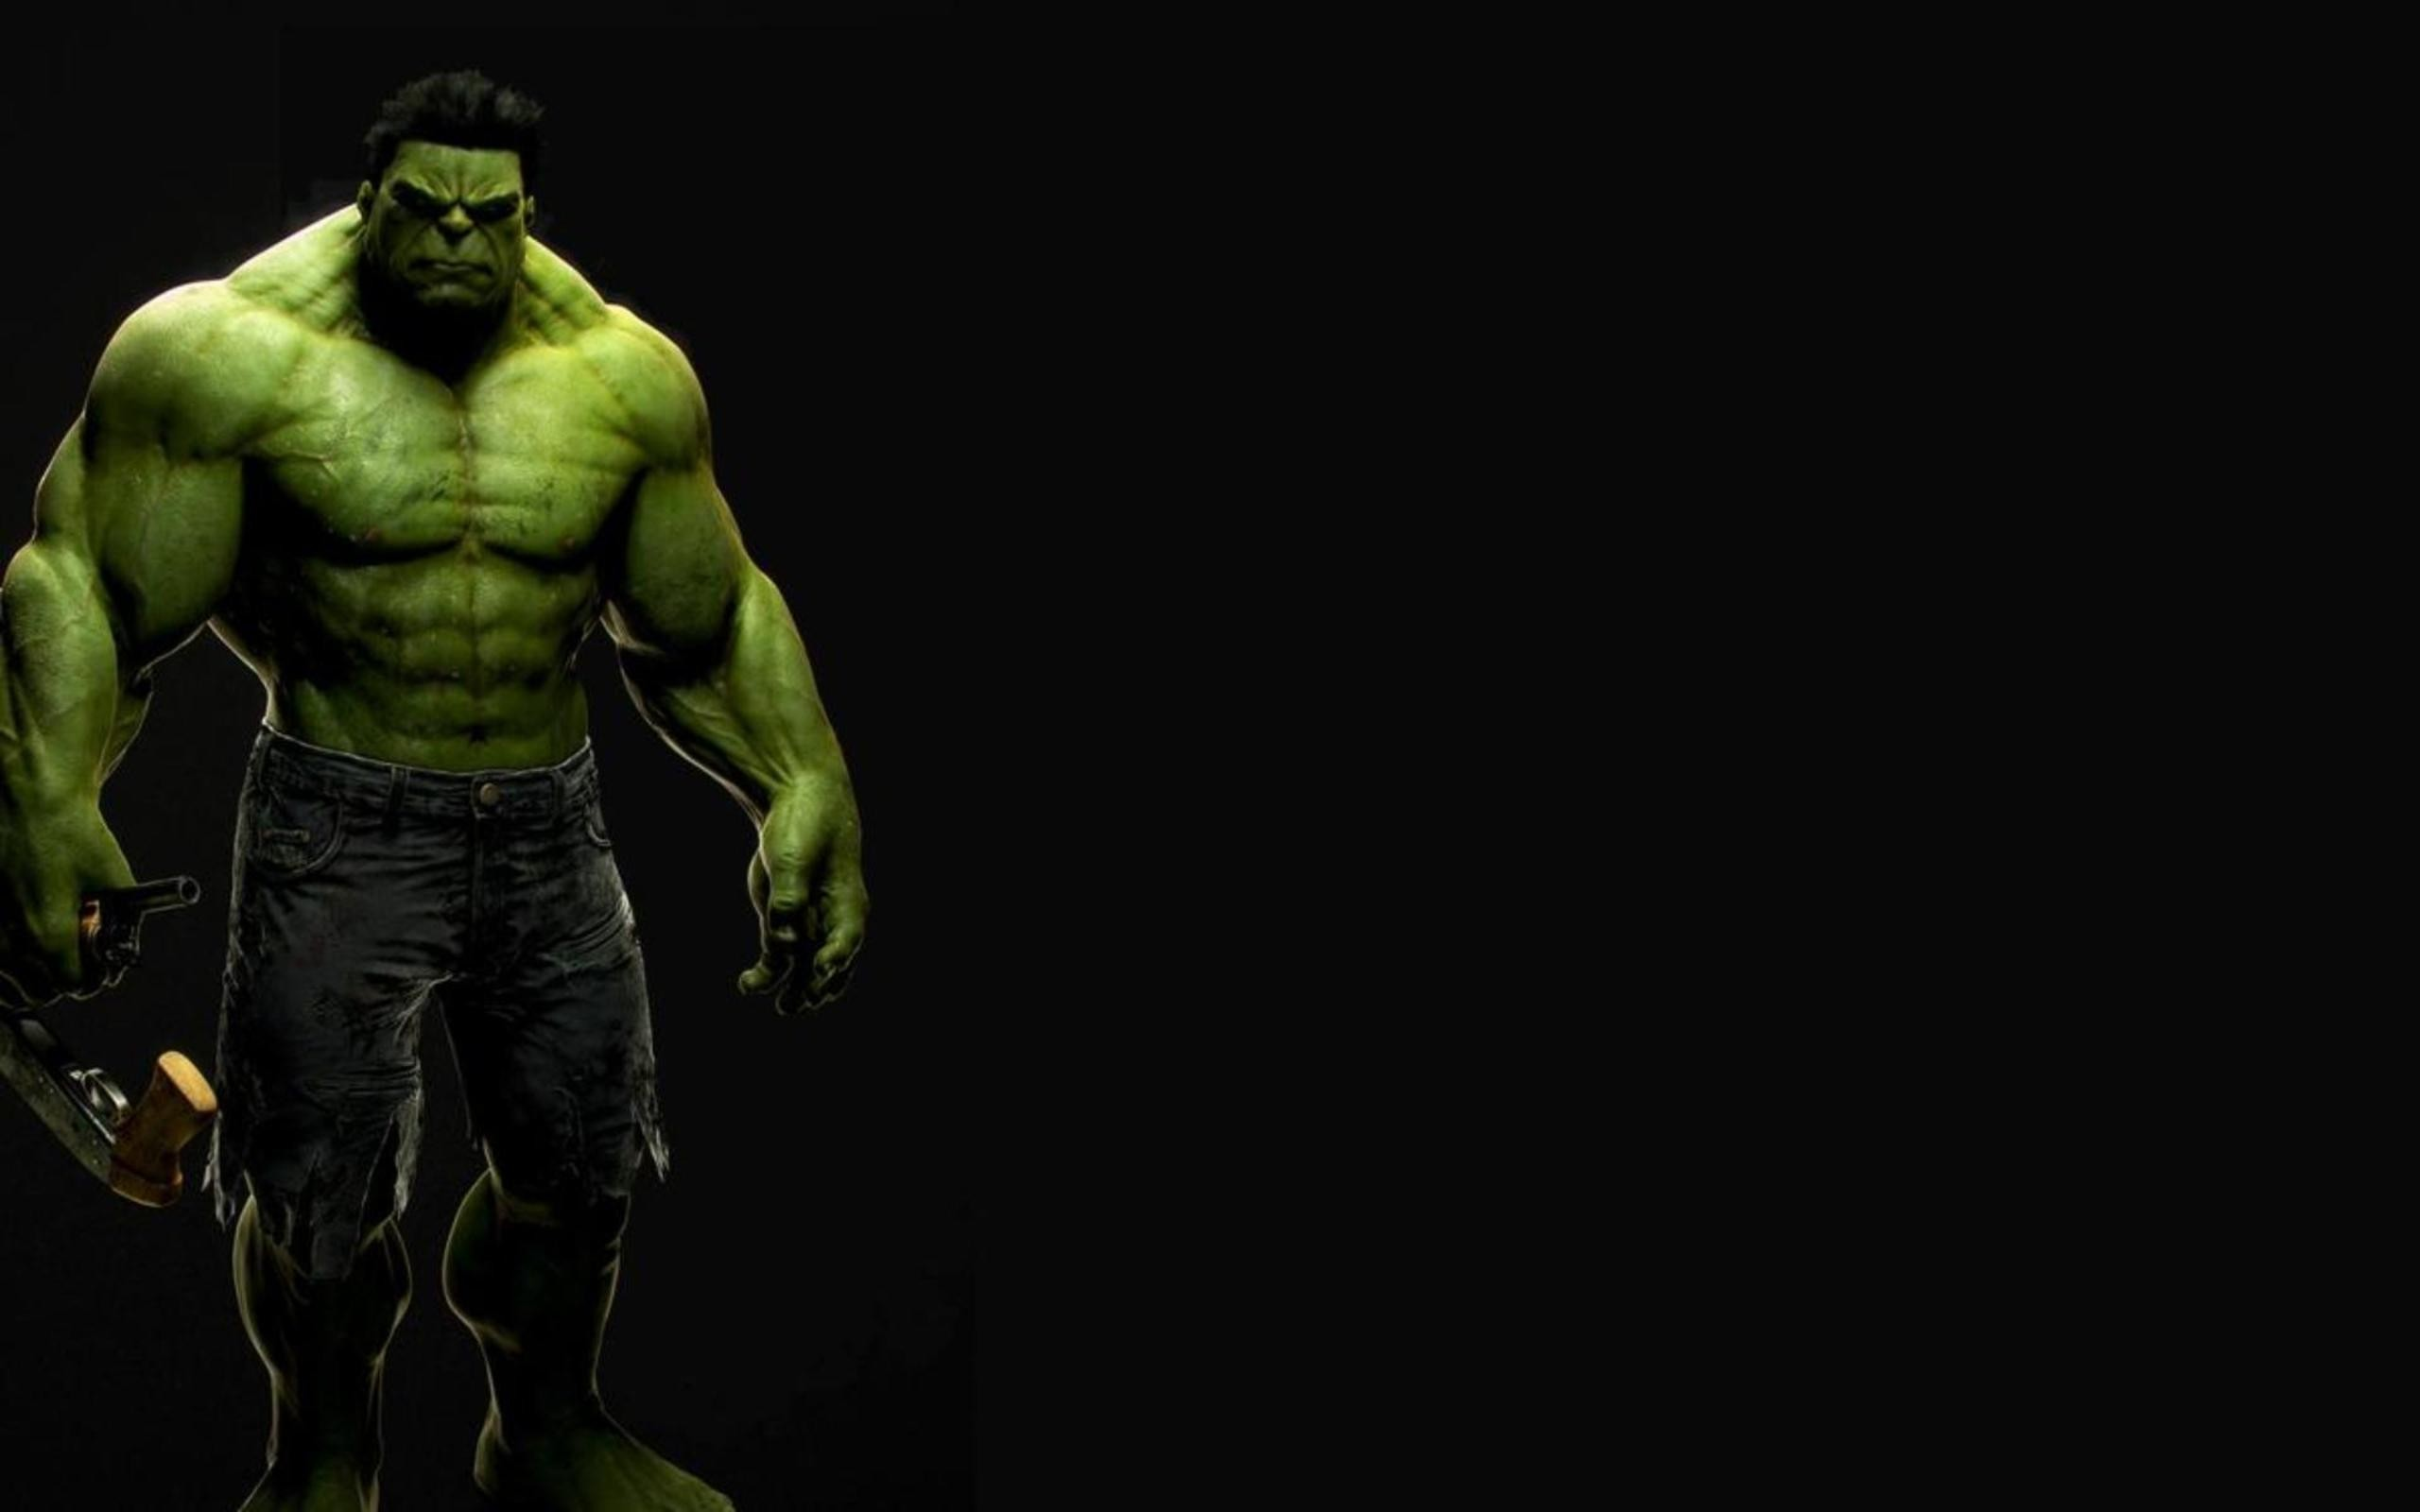 Green beast marvel comics the avengers movie black background hulk